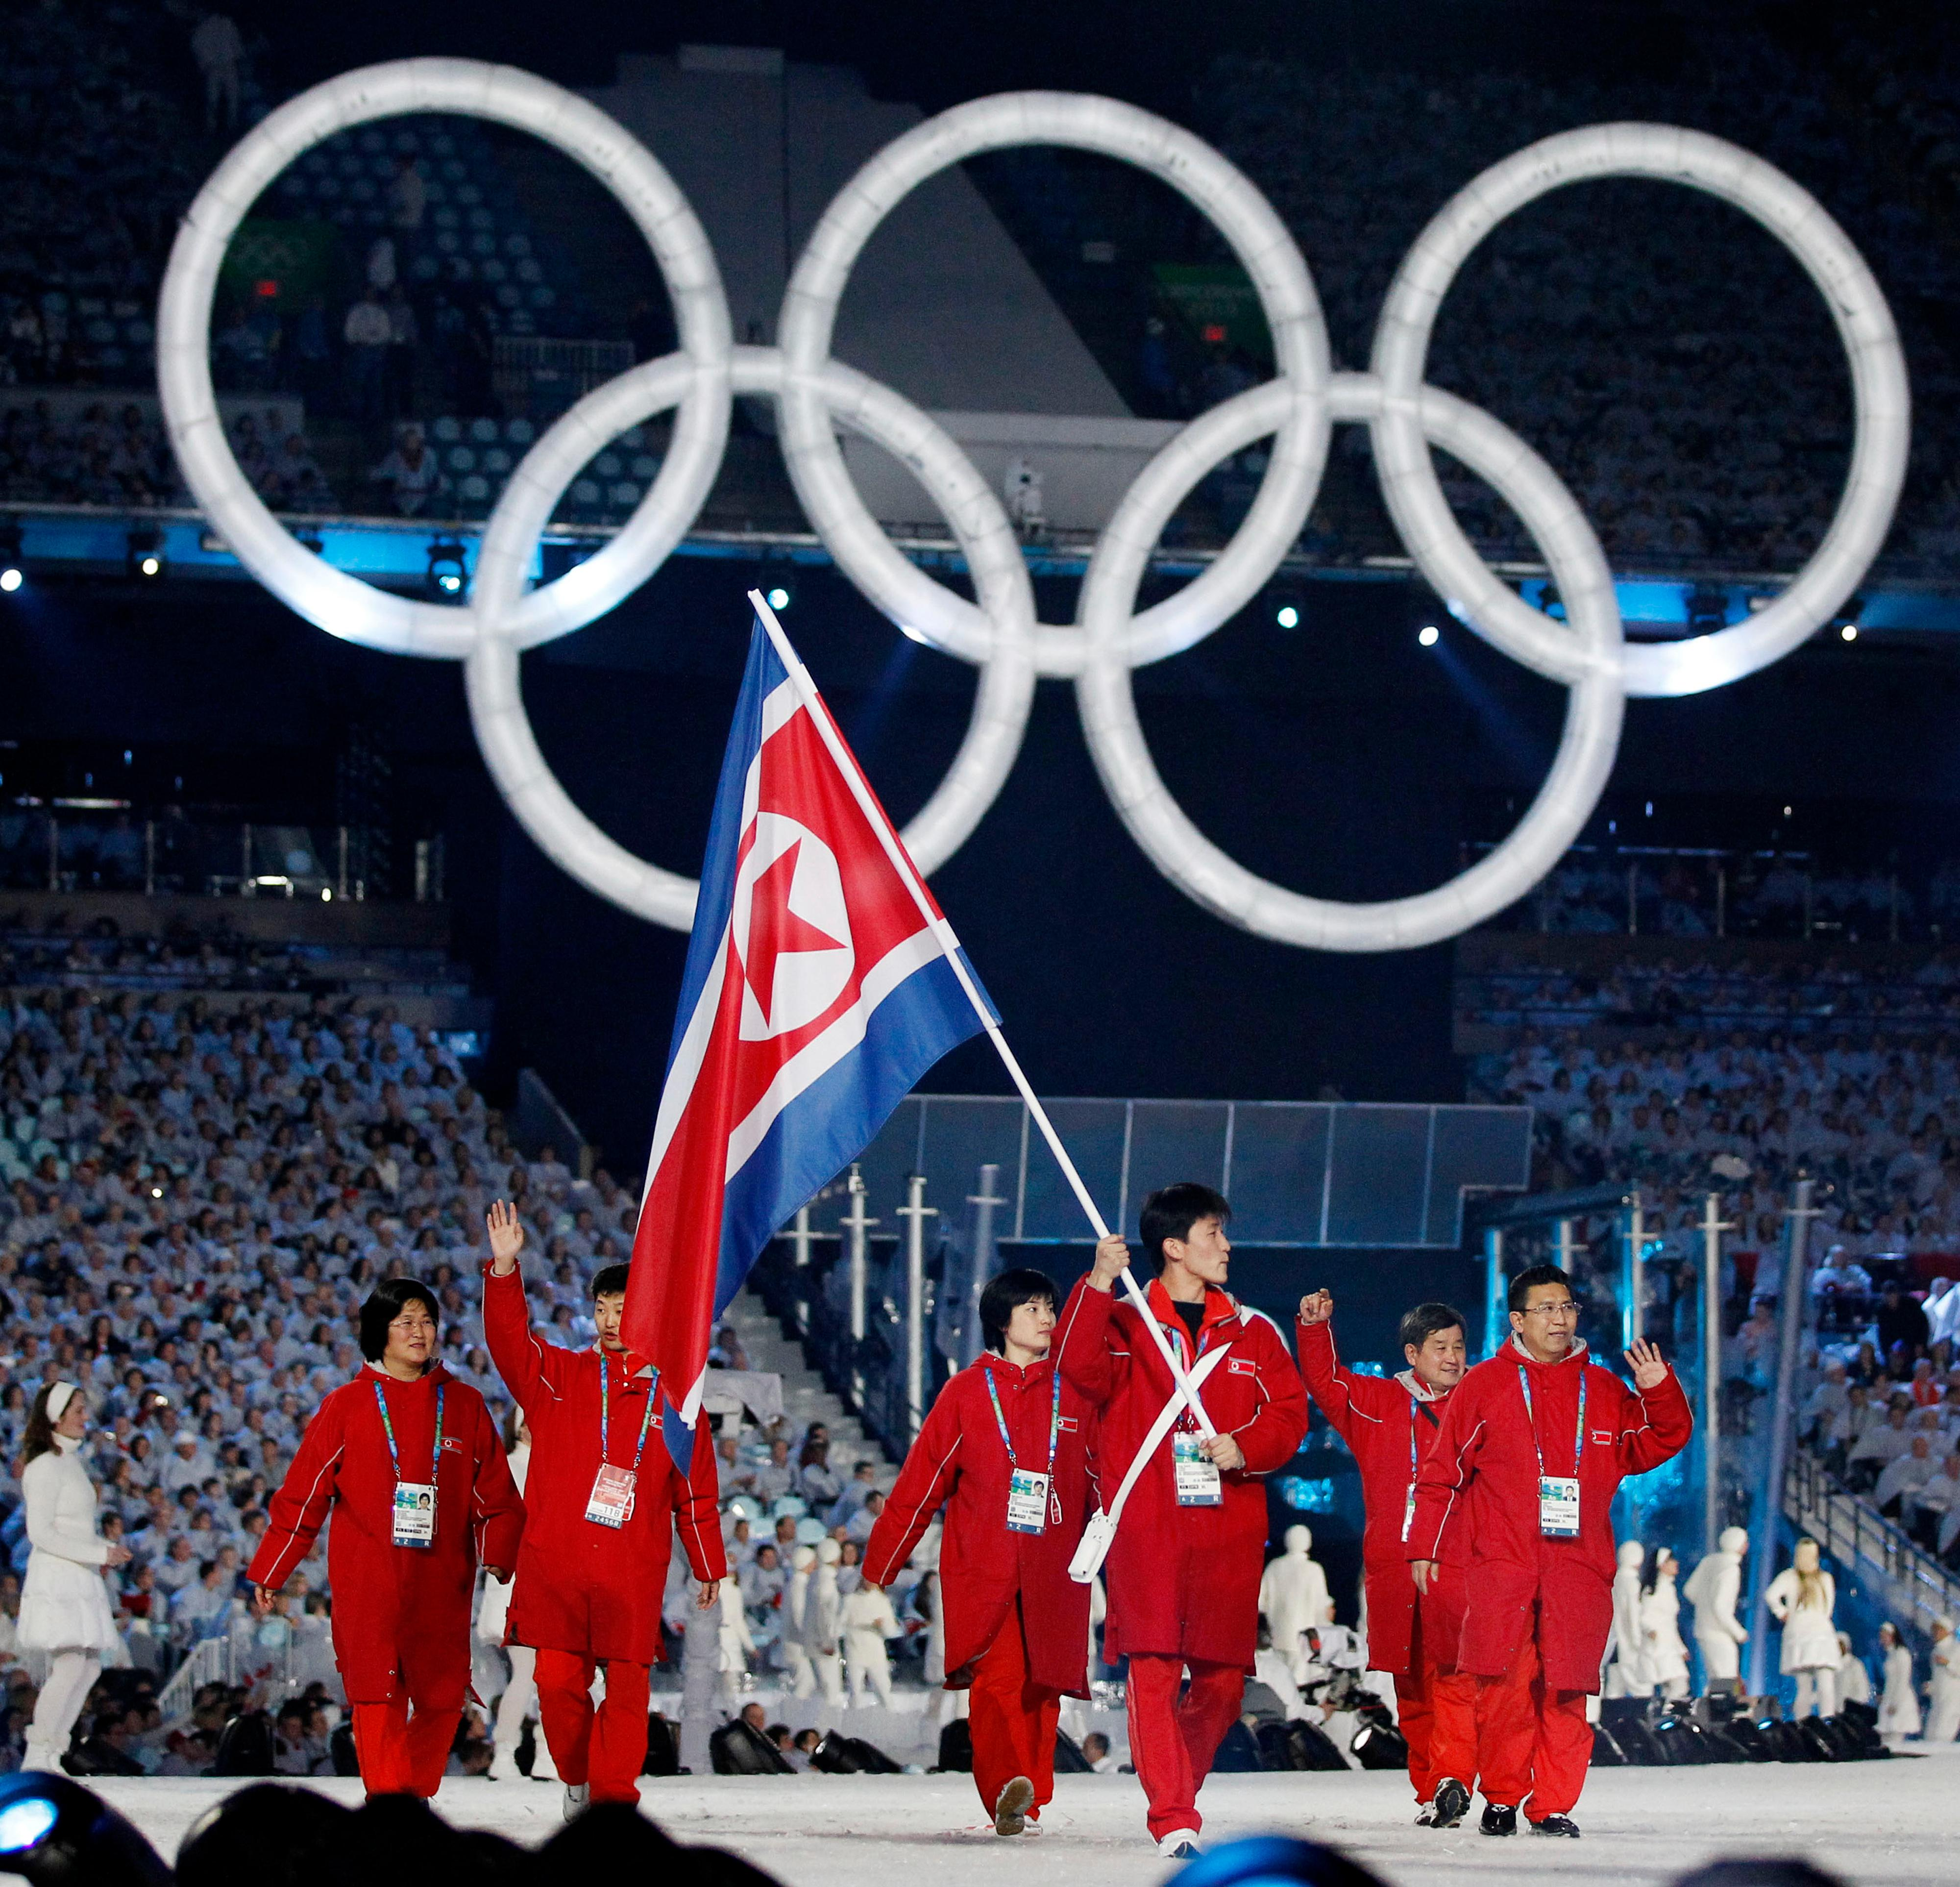 FILE - In this Feb 12, 2010 file photo, North Korea's Song Chol Ri carries the flag during the opening ceremony for the Vancouver 2010 Olympics in Vancouver, Canada. Seven months ahead of the Pyeongchang Olympics, many in South Korea, including new liberal President Moon Jae-in, hope to use the Games as a venue to promote peace with rival North Korea. To do so, the North's participation is essential, but an ongoing nuclear tension and a lack of winter sports athletes in North Korea could ruin the attempts at reconciliation. (AP Photo/Mark Baker, File)